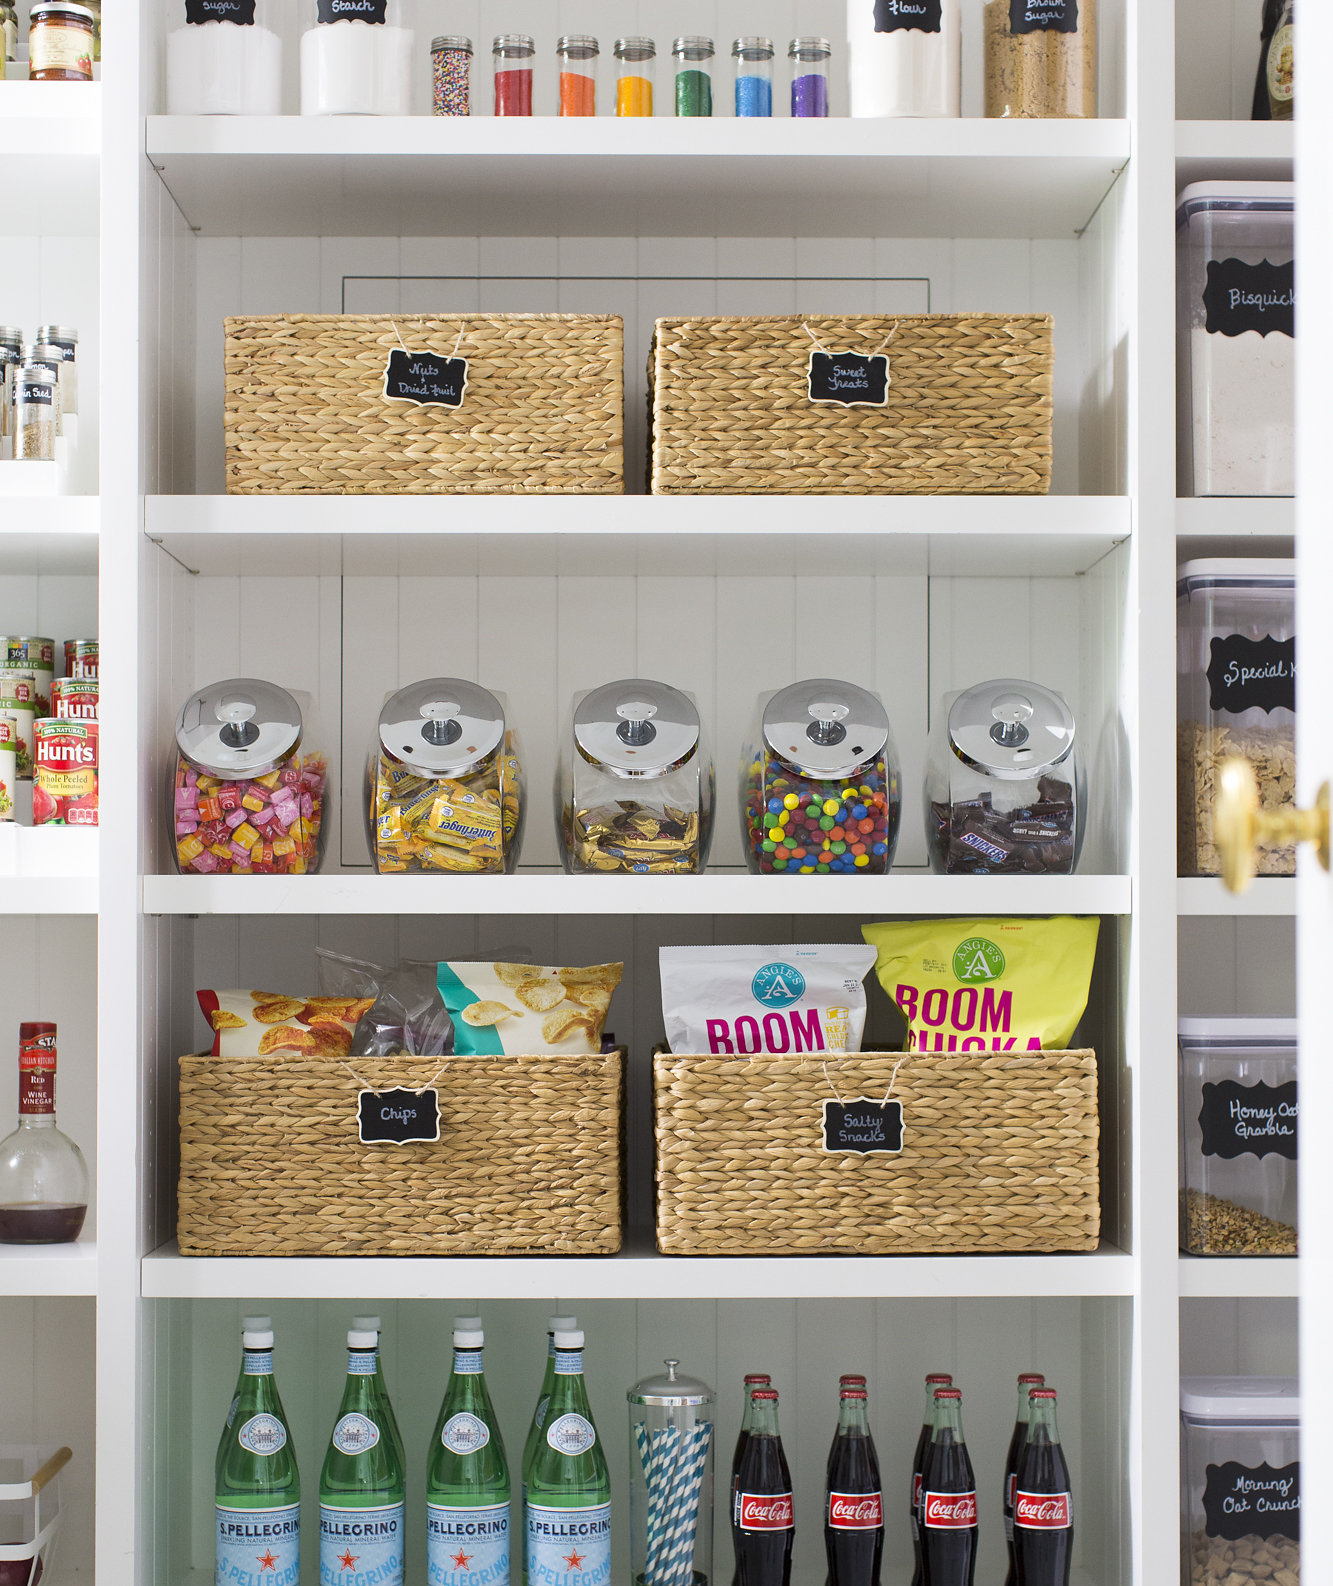 NEAT Method shelves with products